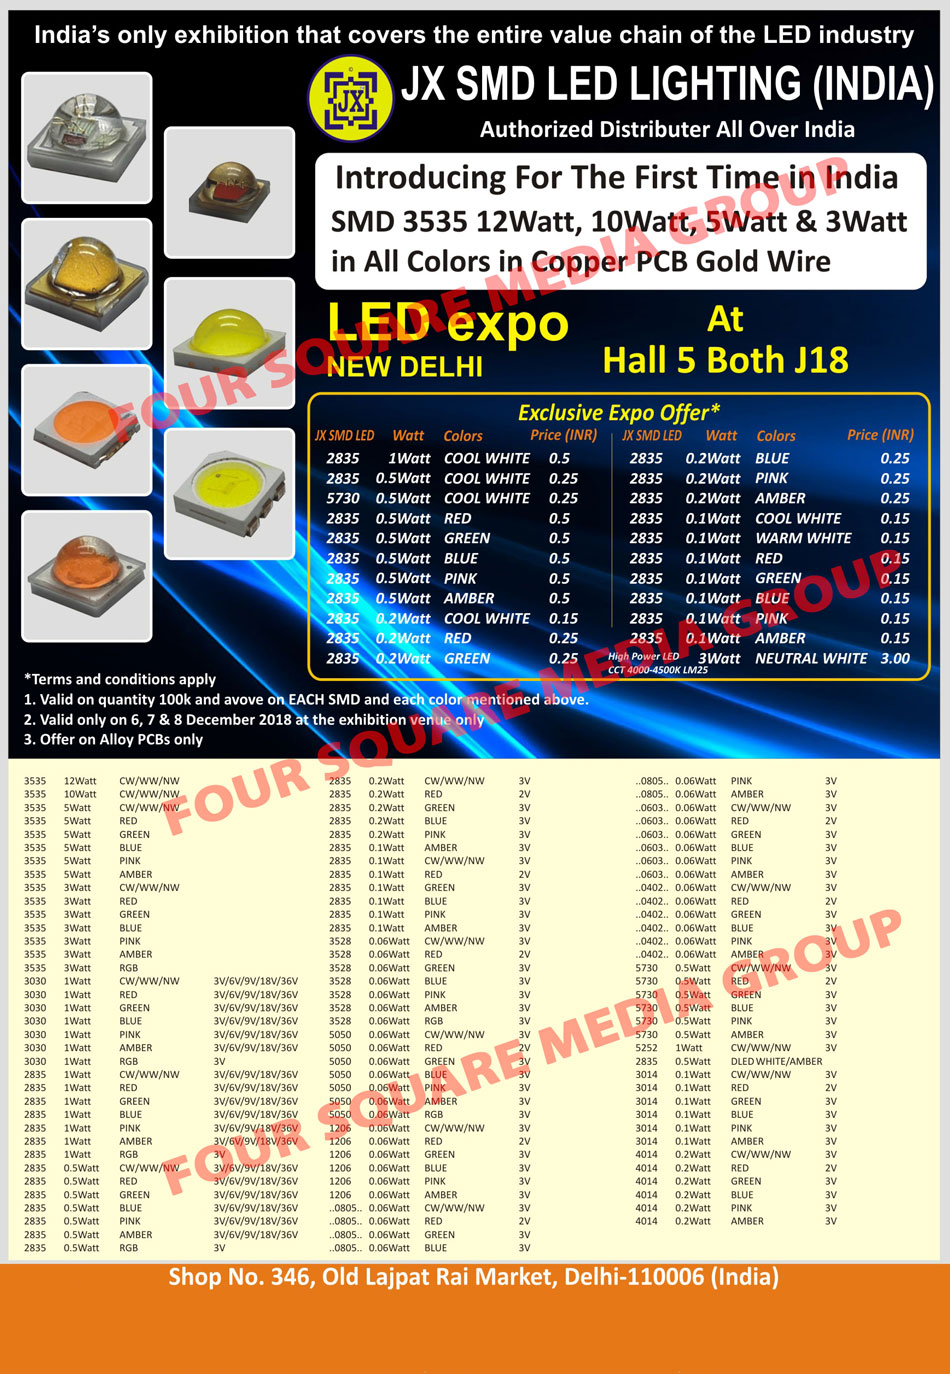 SMD Leds, High Power Leds, COB Leds, DIP Leds, LED Modules, LED Lens, Flexible Strip Leds Led Pixel Lights, Semiconductors, SMD PCB Without Driver, SMD Printed Circuit Board Without Driver, Power Leds, SMPS, Led Drivers, Pixel Leds, Power Supply, Zener Diodes, Led Bulbs, Driver Chip, DOB Down Lights, DOB Flood Lights, DOB Bulb, HV Cob, Led Tube Driver, RGB Led Controller, Pixel Led Drivers, Copper PCB Gold Wires